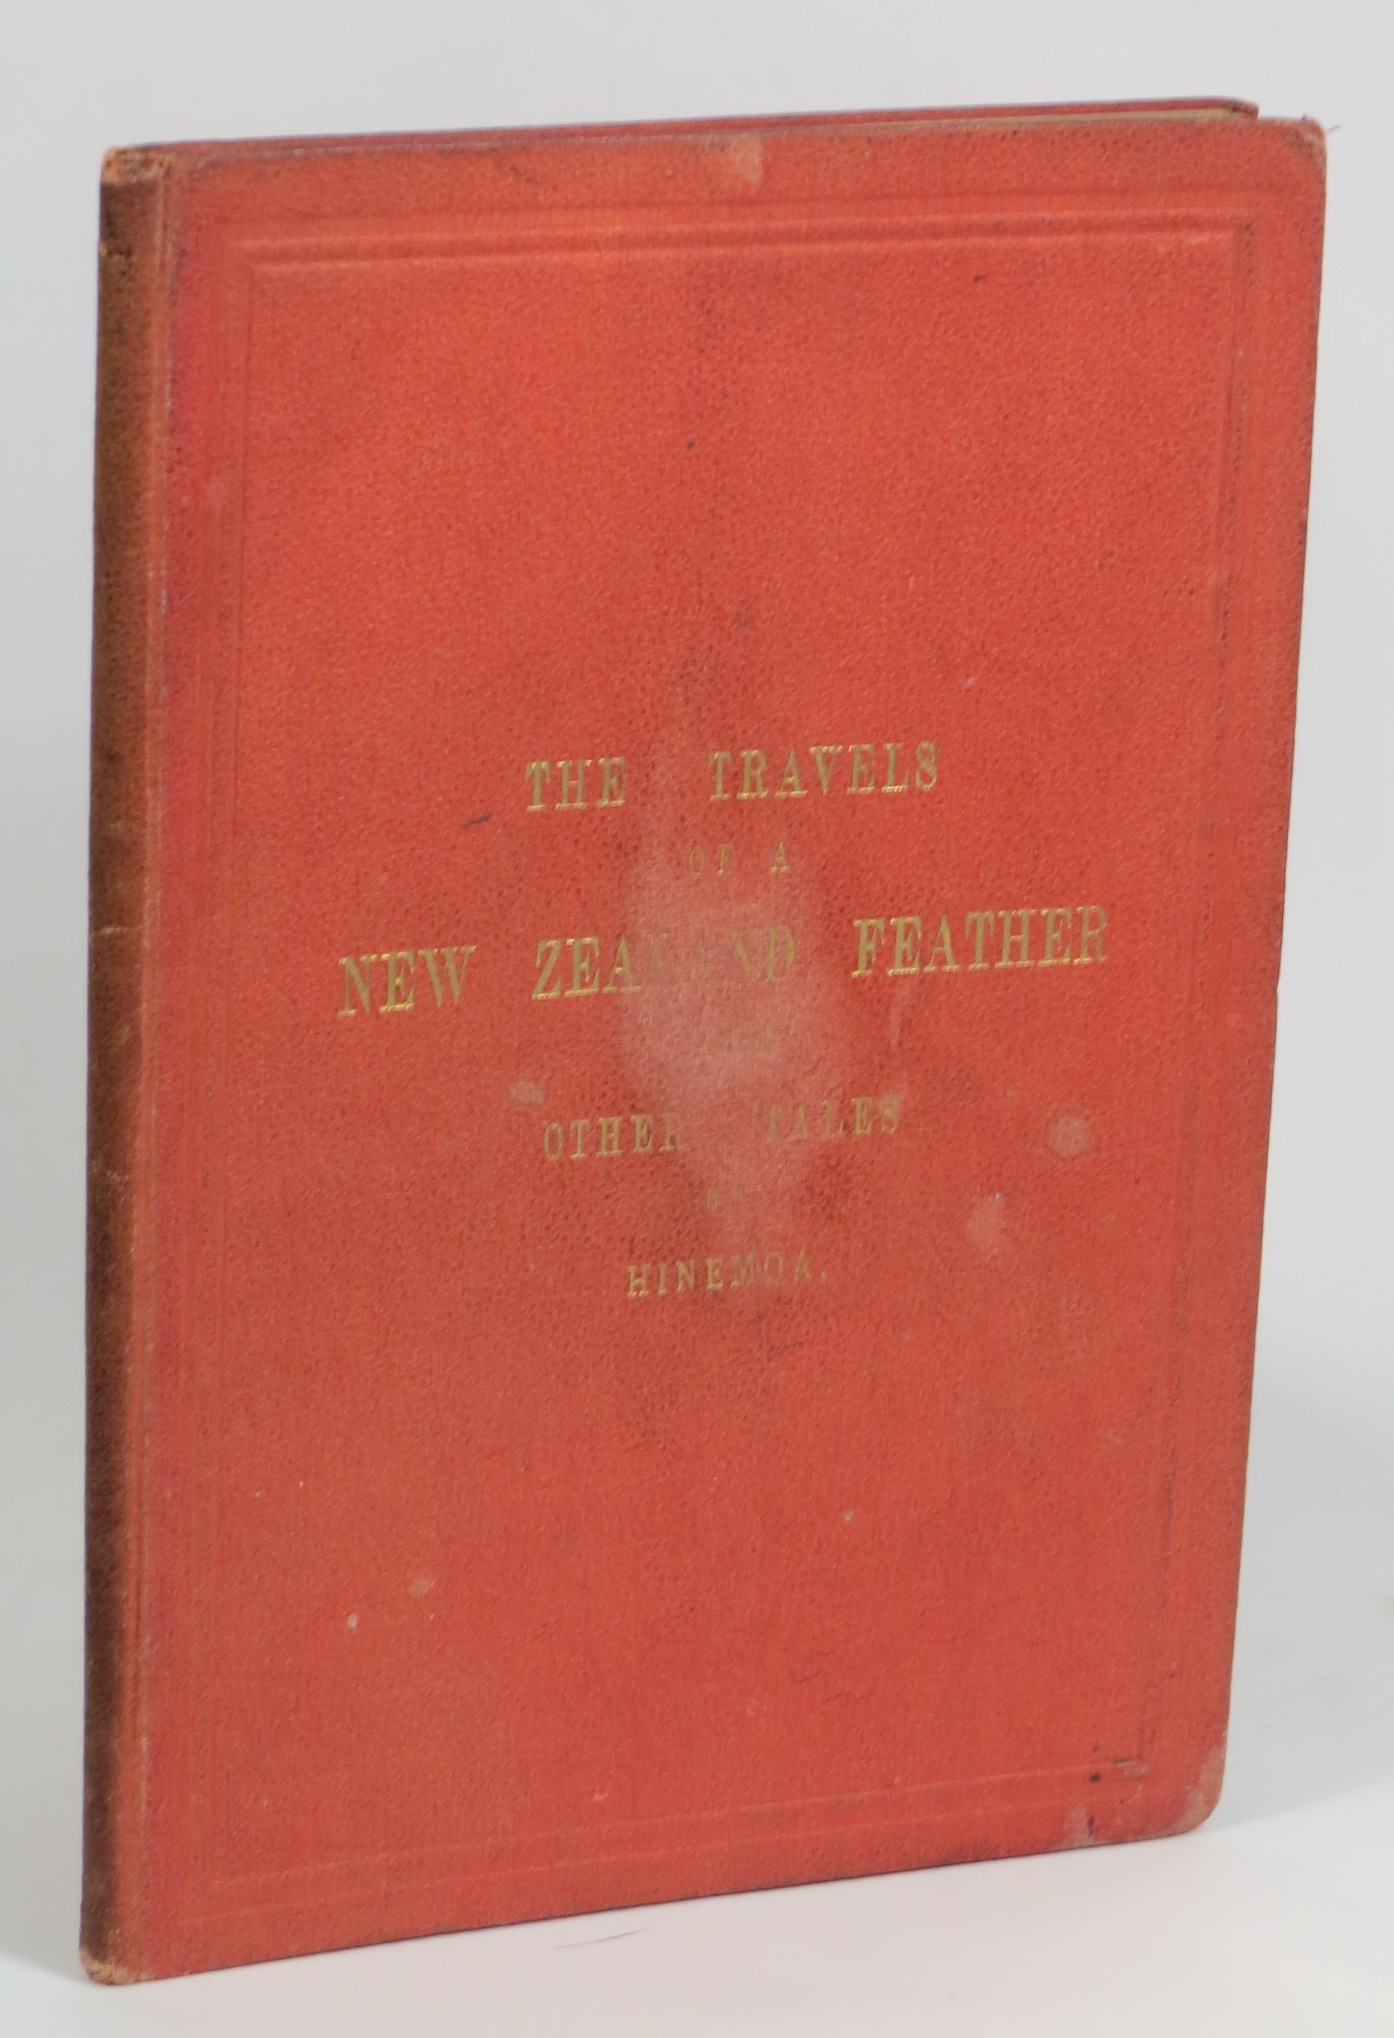 Image for The Travels of a New Zealand Feather and Other Tales